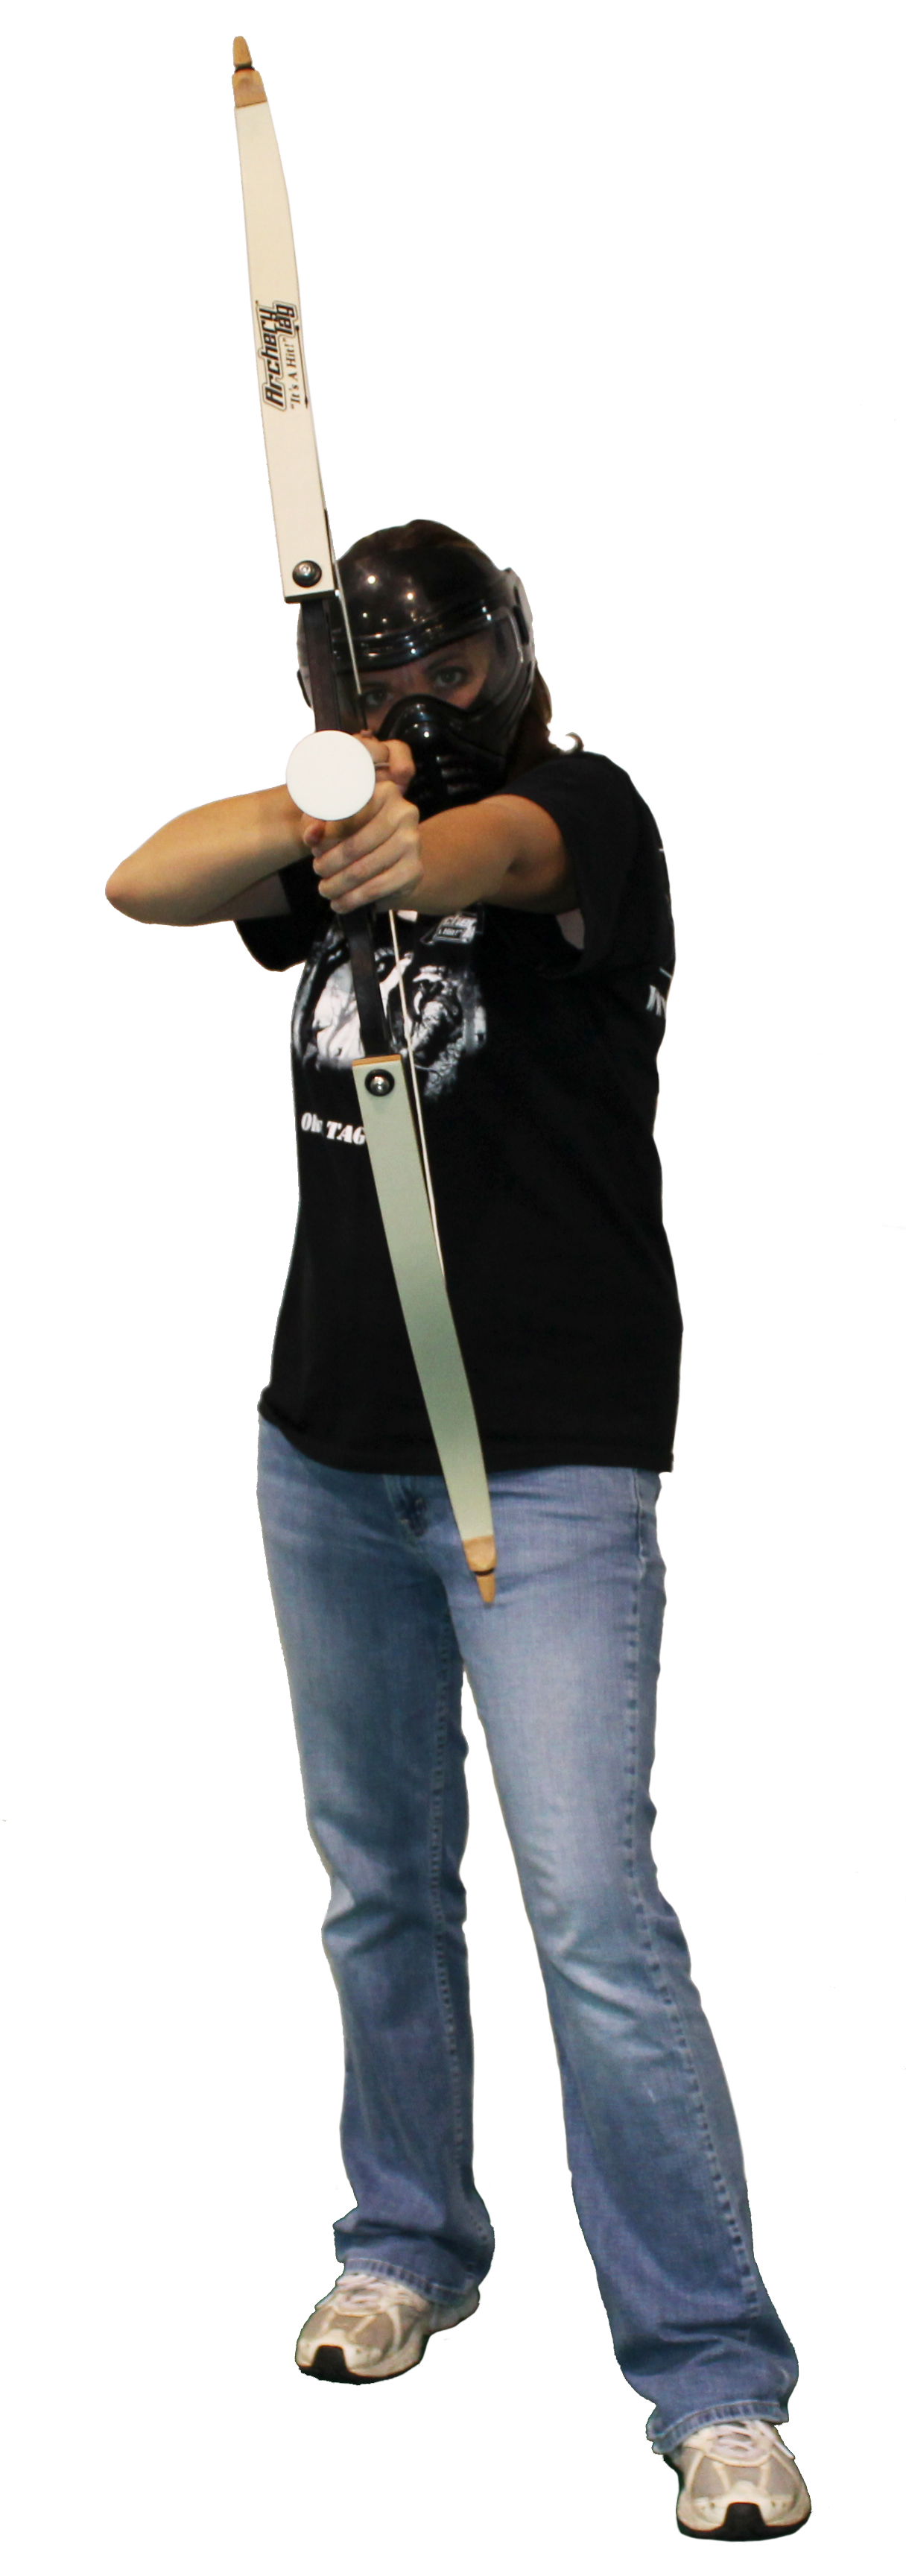 woman playing archery tag